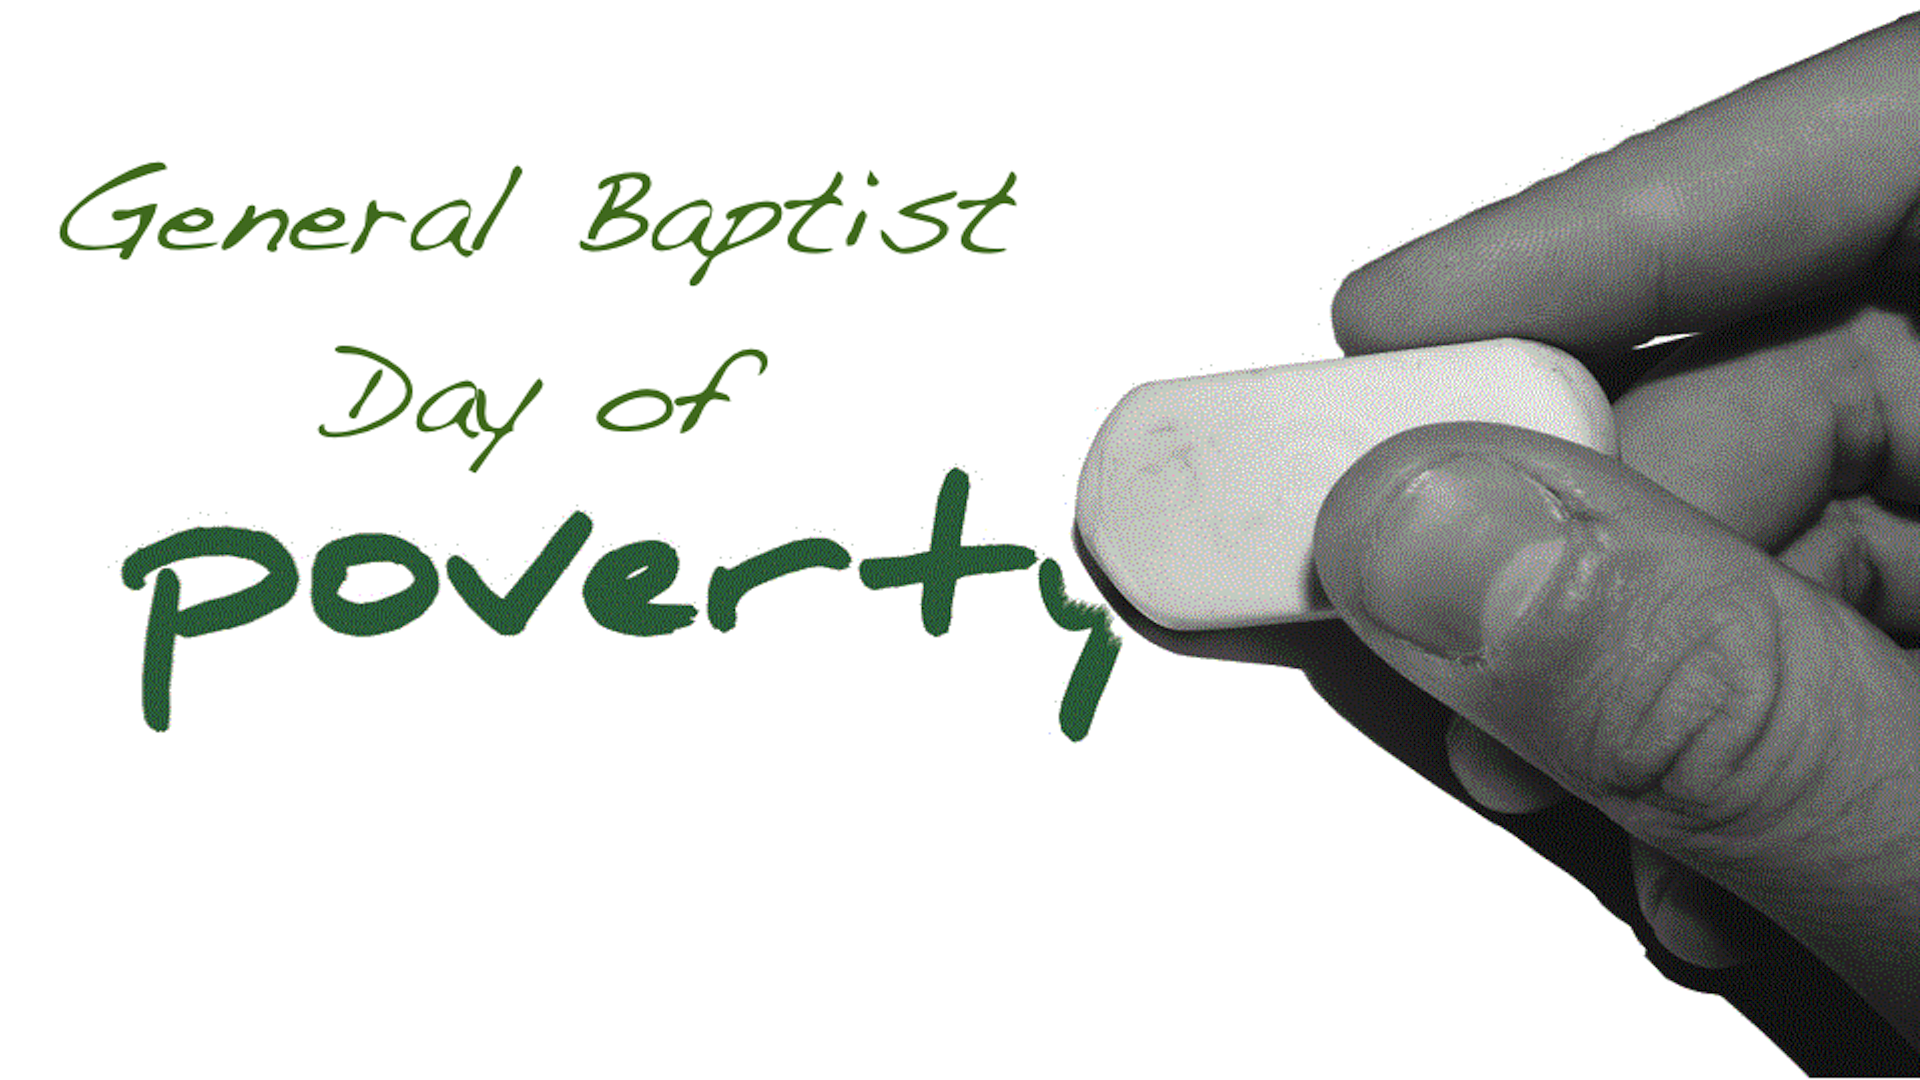 Day of Poverty Online Resources